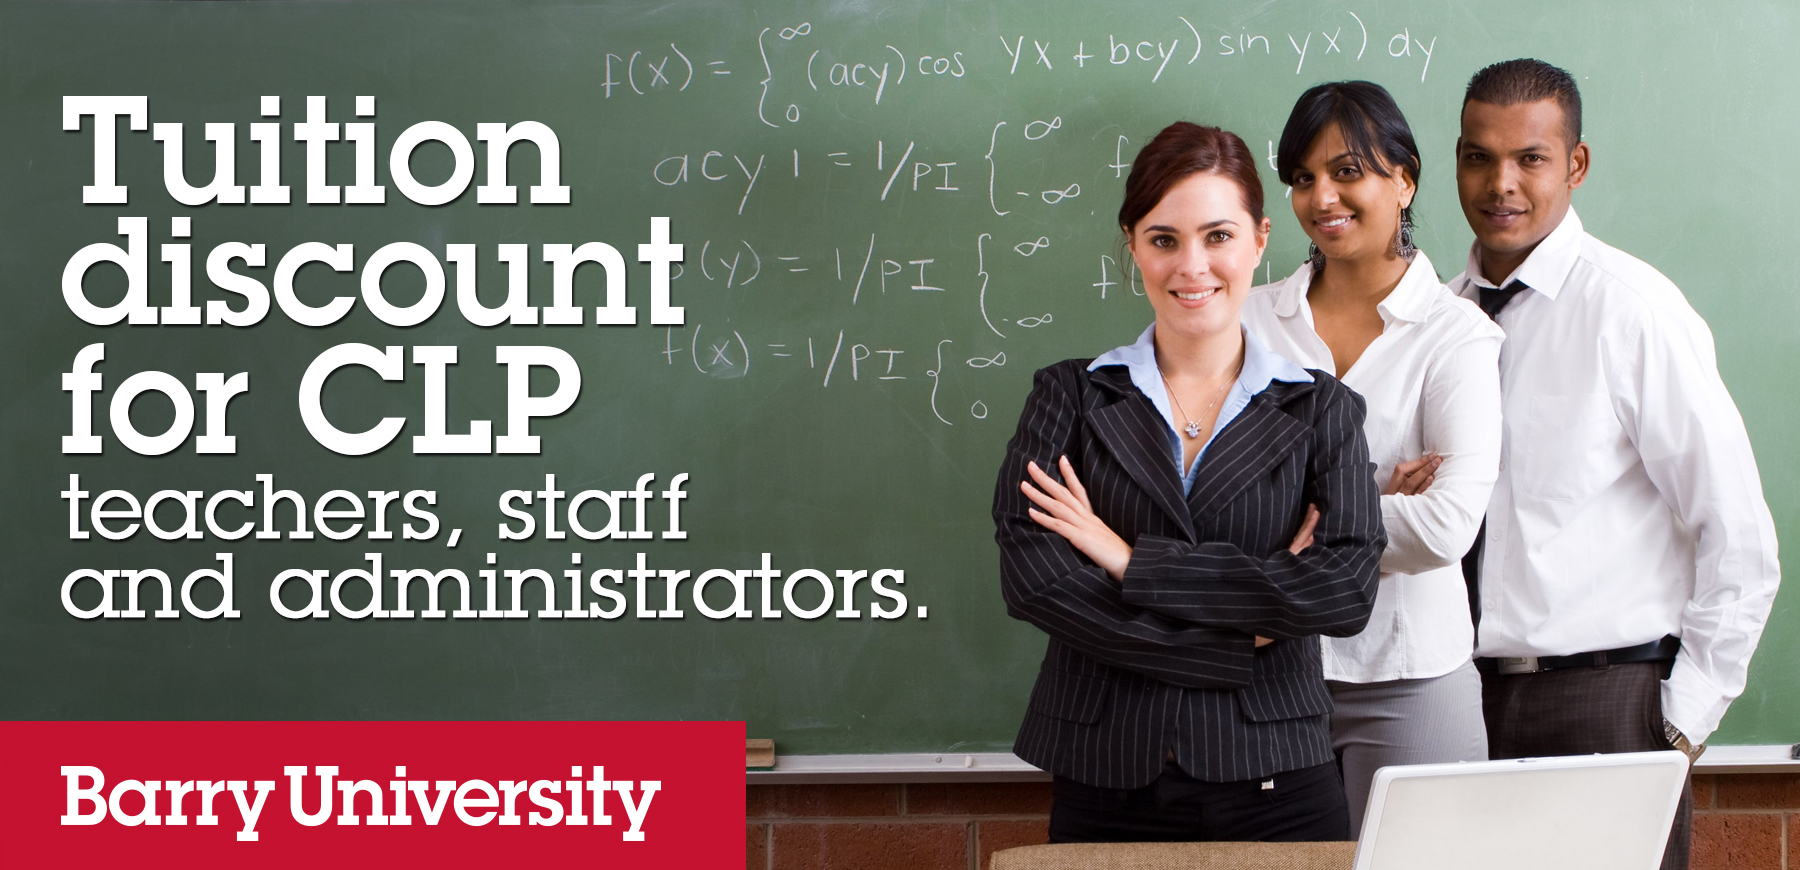 Barry University's CLP Tuition Discount